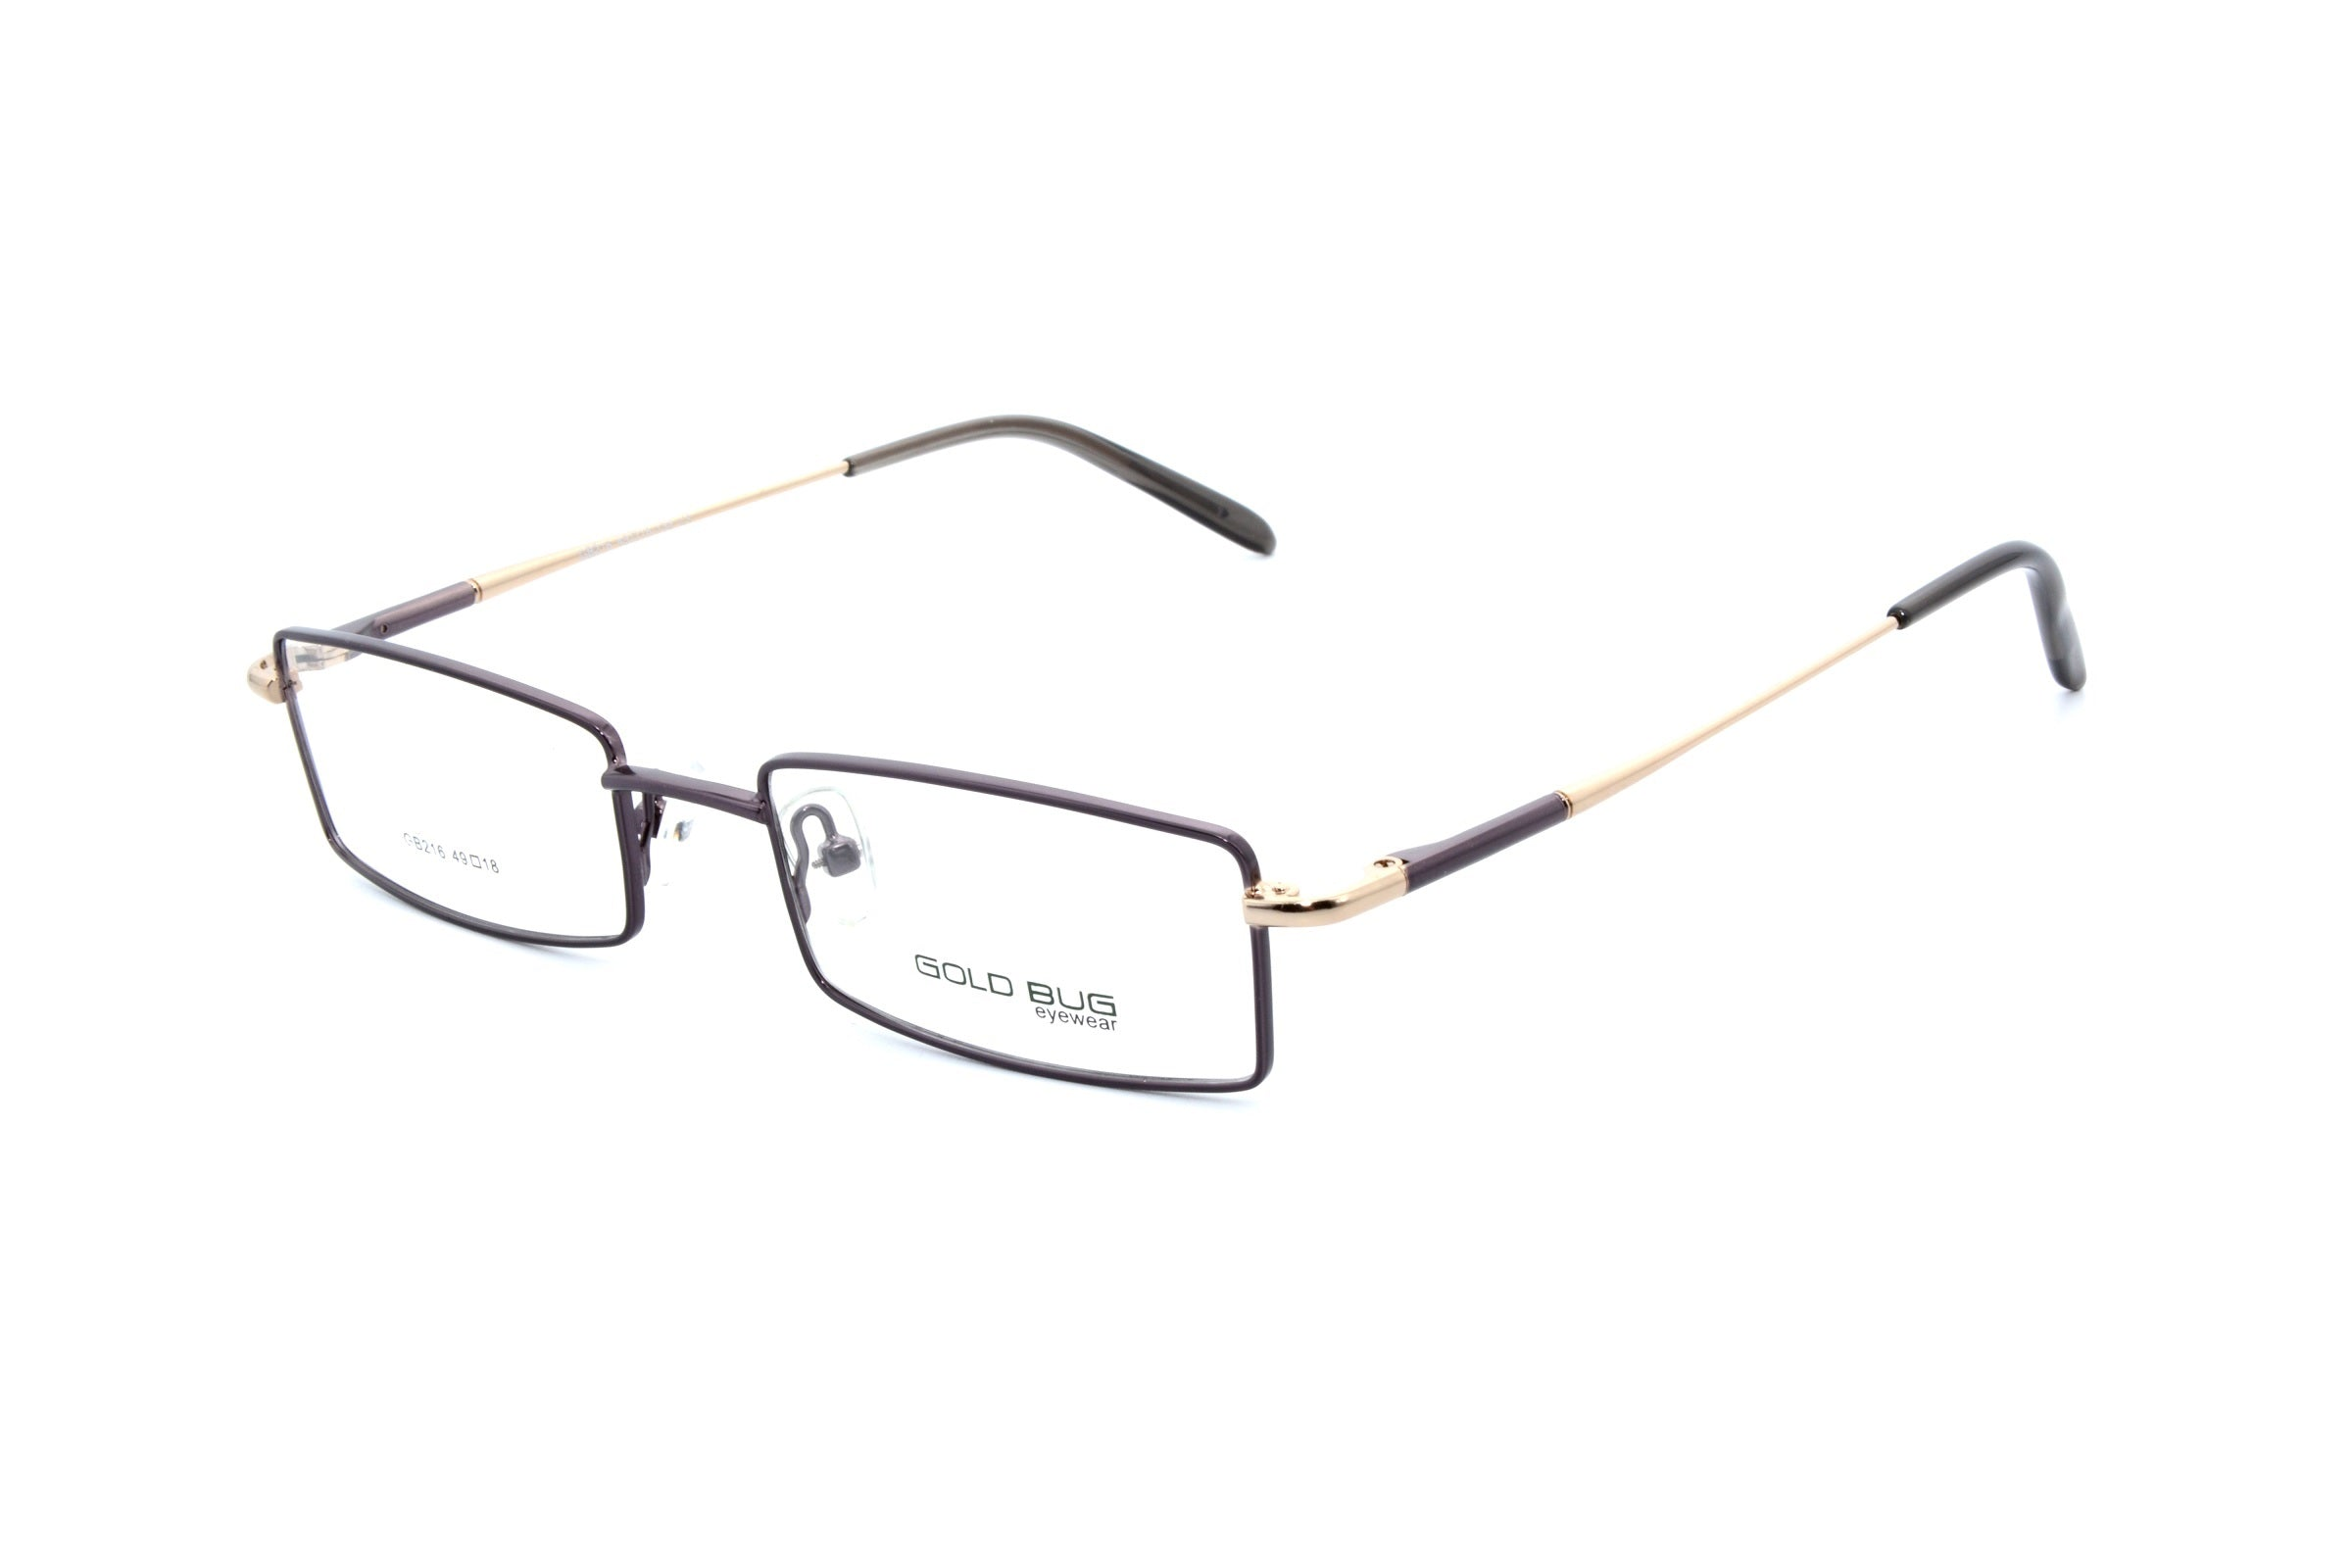 Gold bug eyewear GB216 C4 - Optics Trading